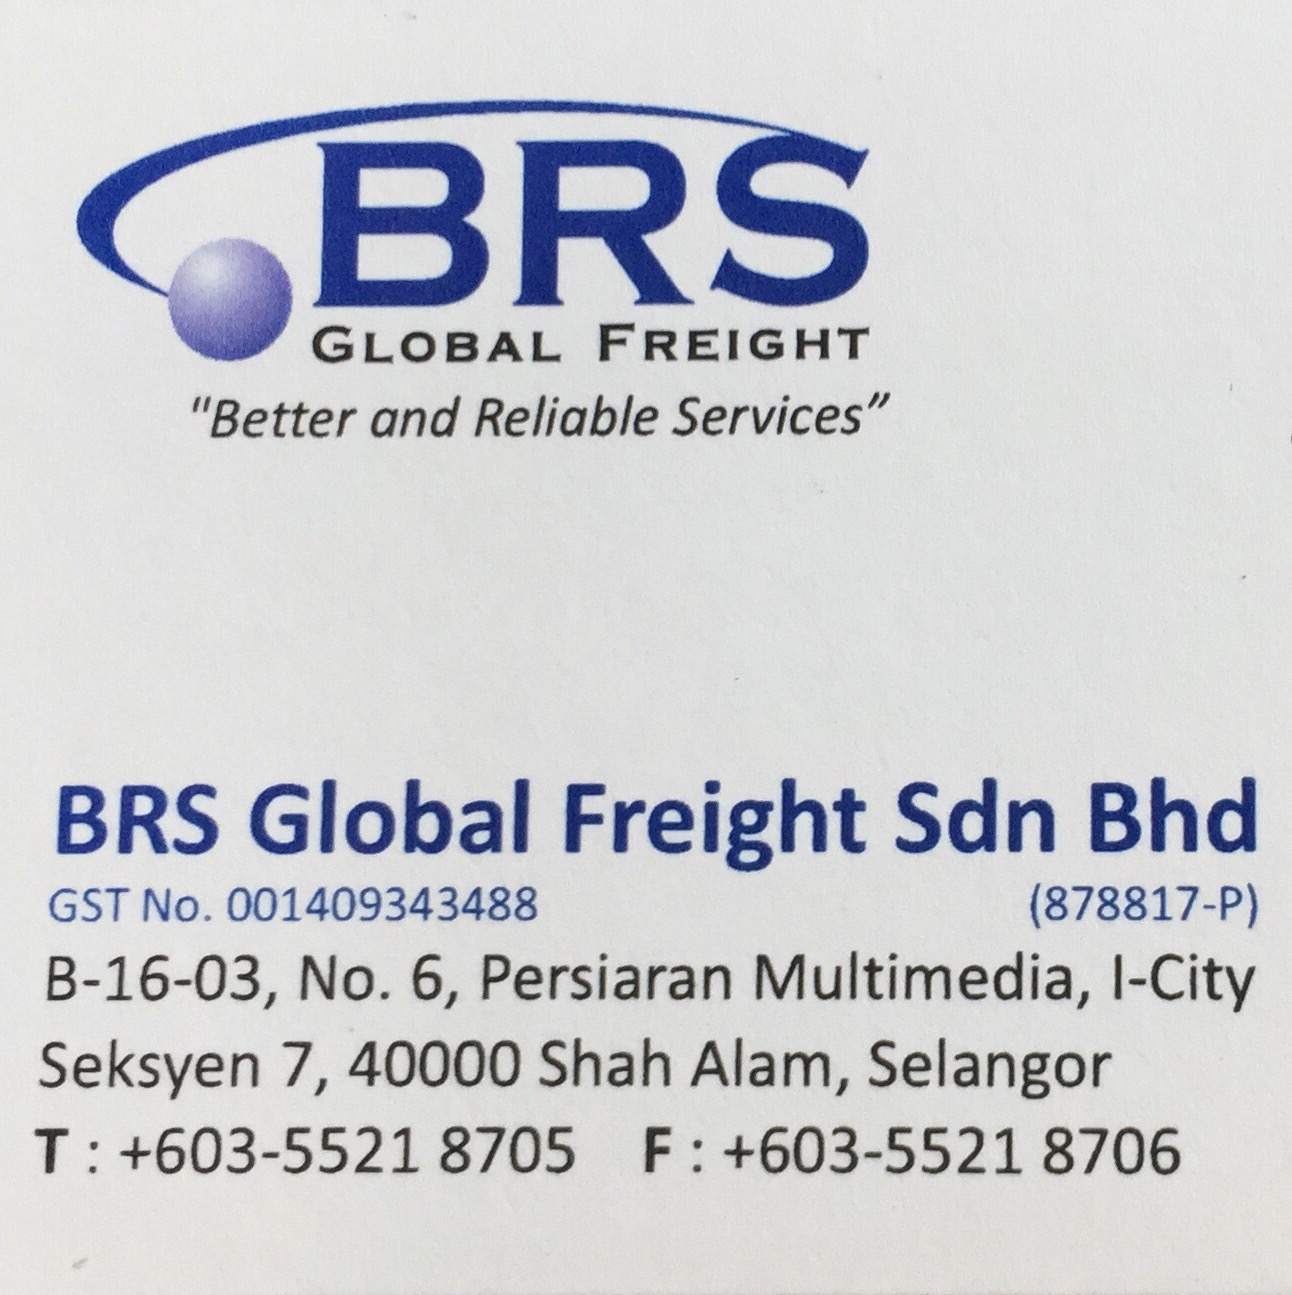 BRS Global Freight Sdn Bhd